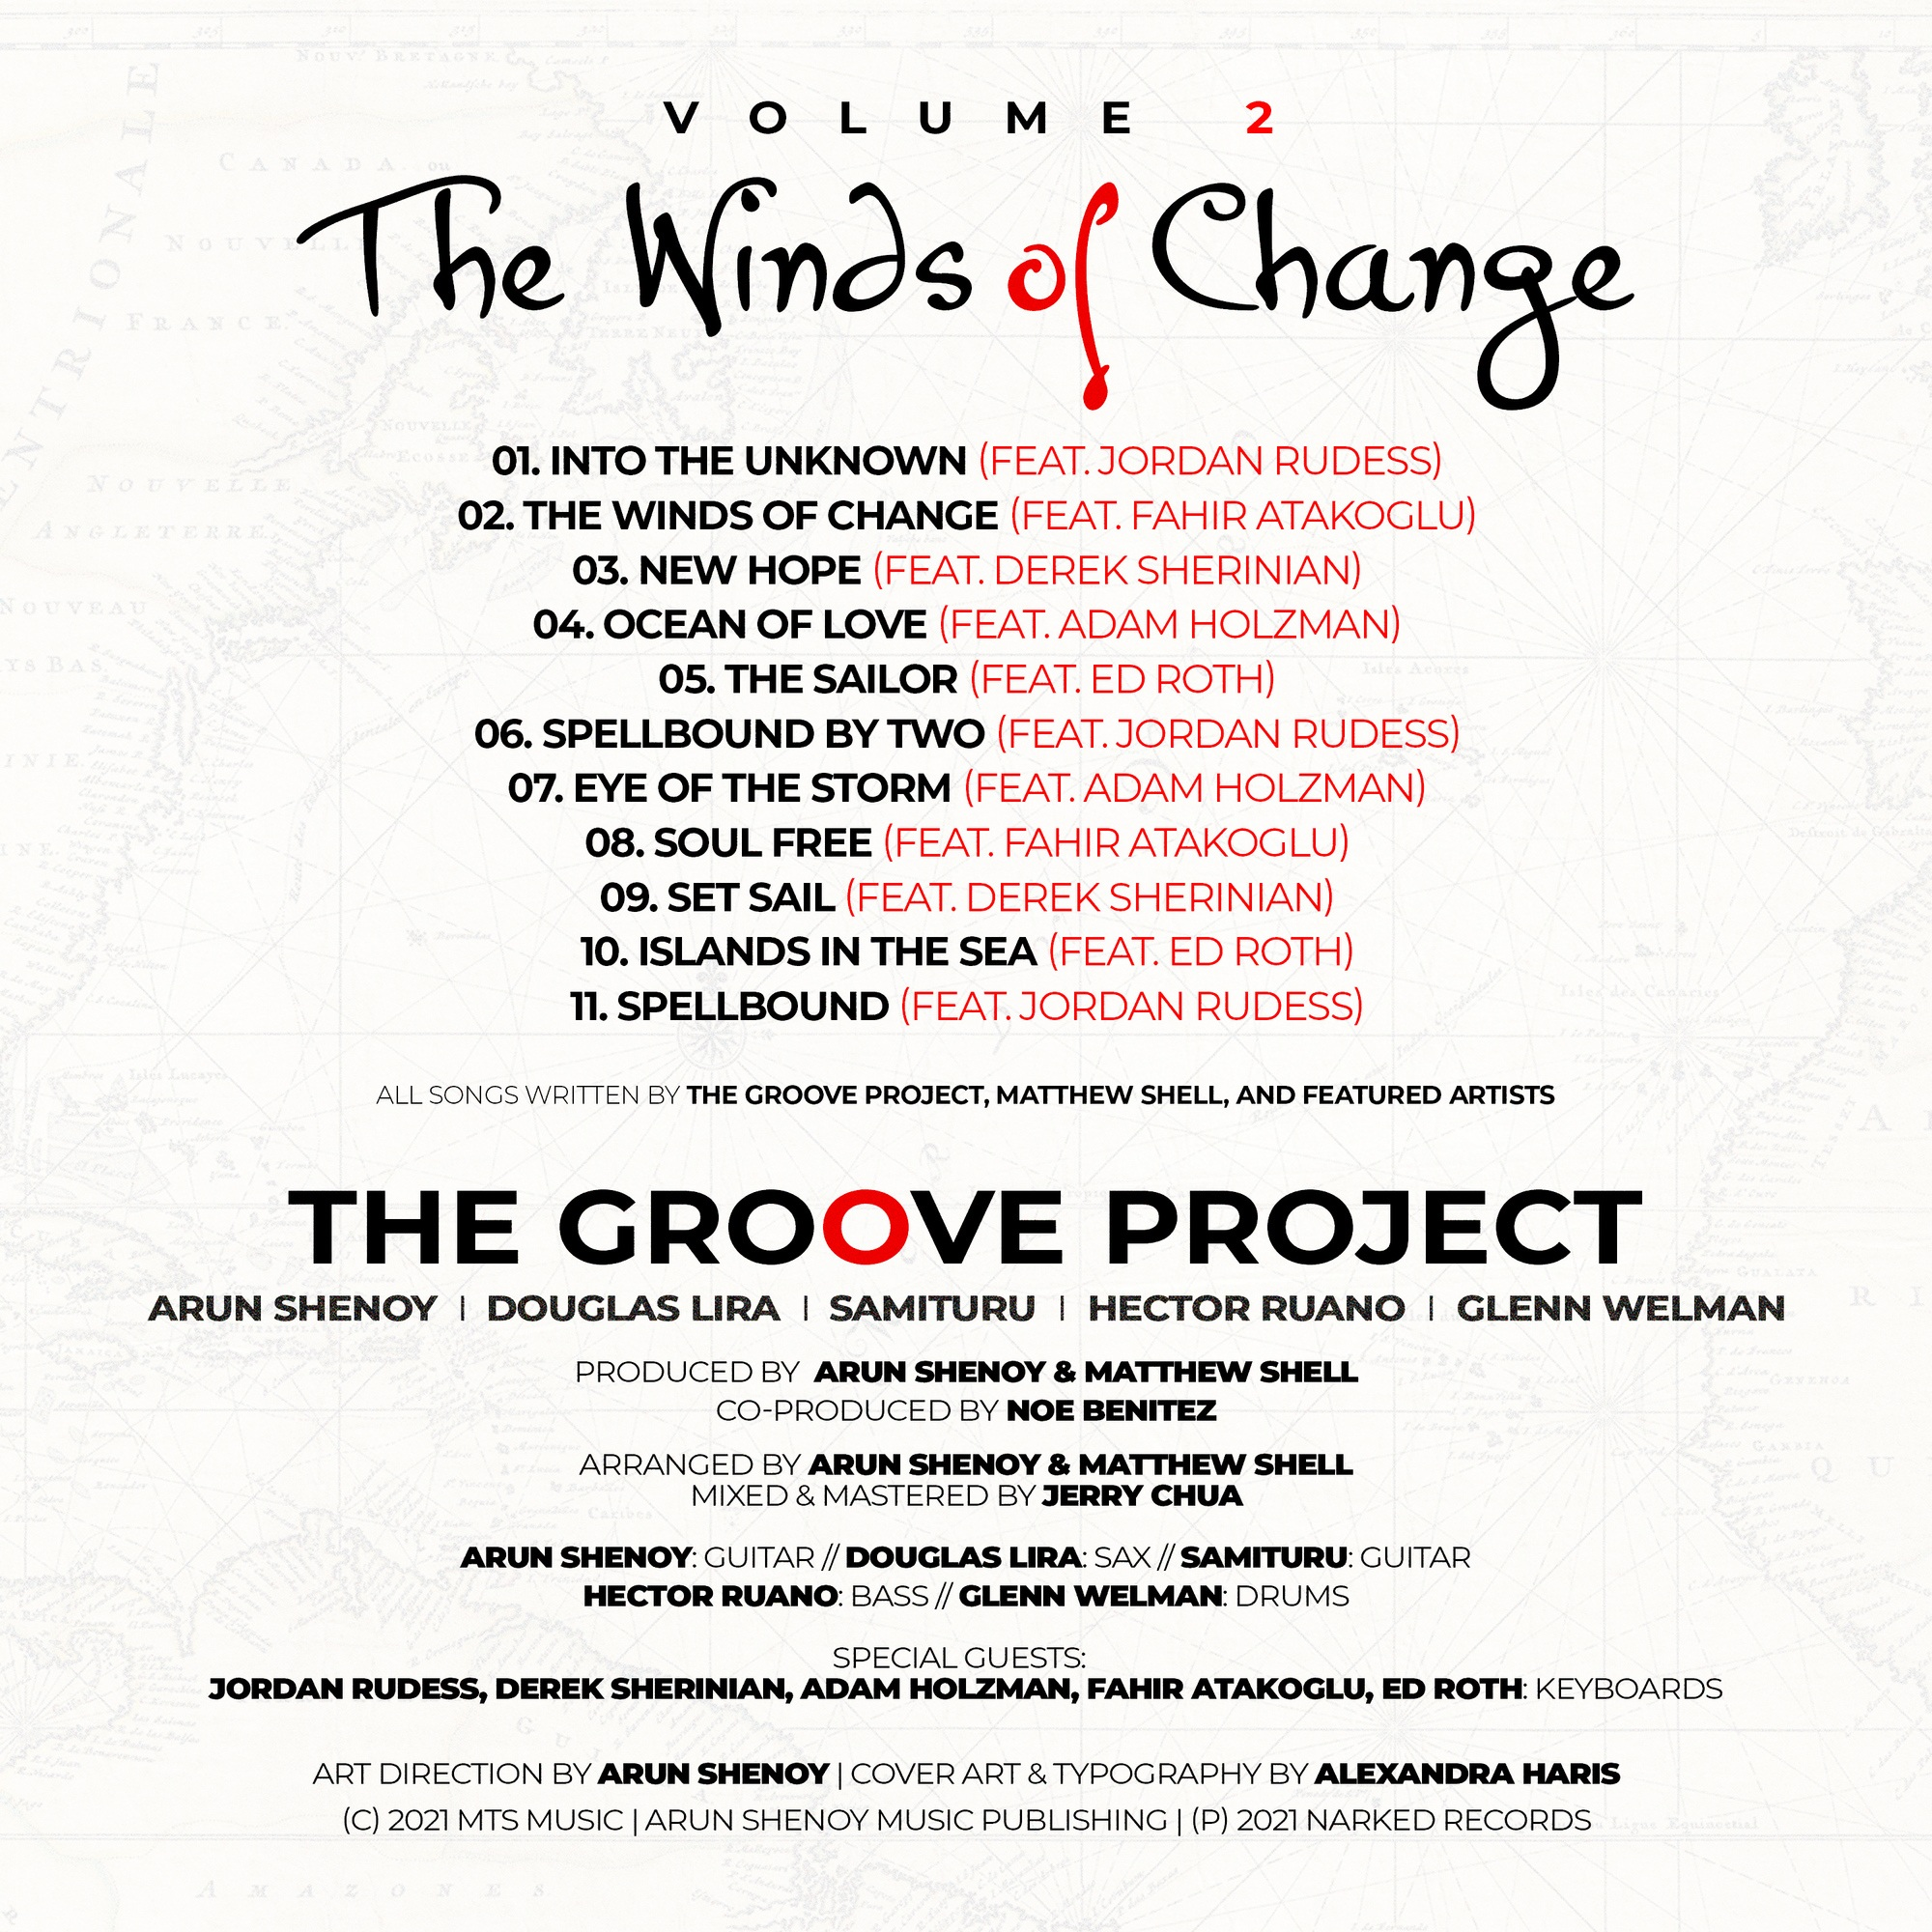 The Groove Project - Credits Sheet